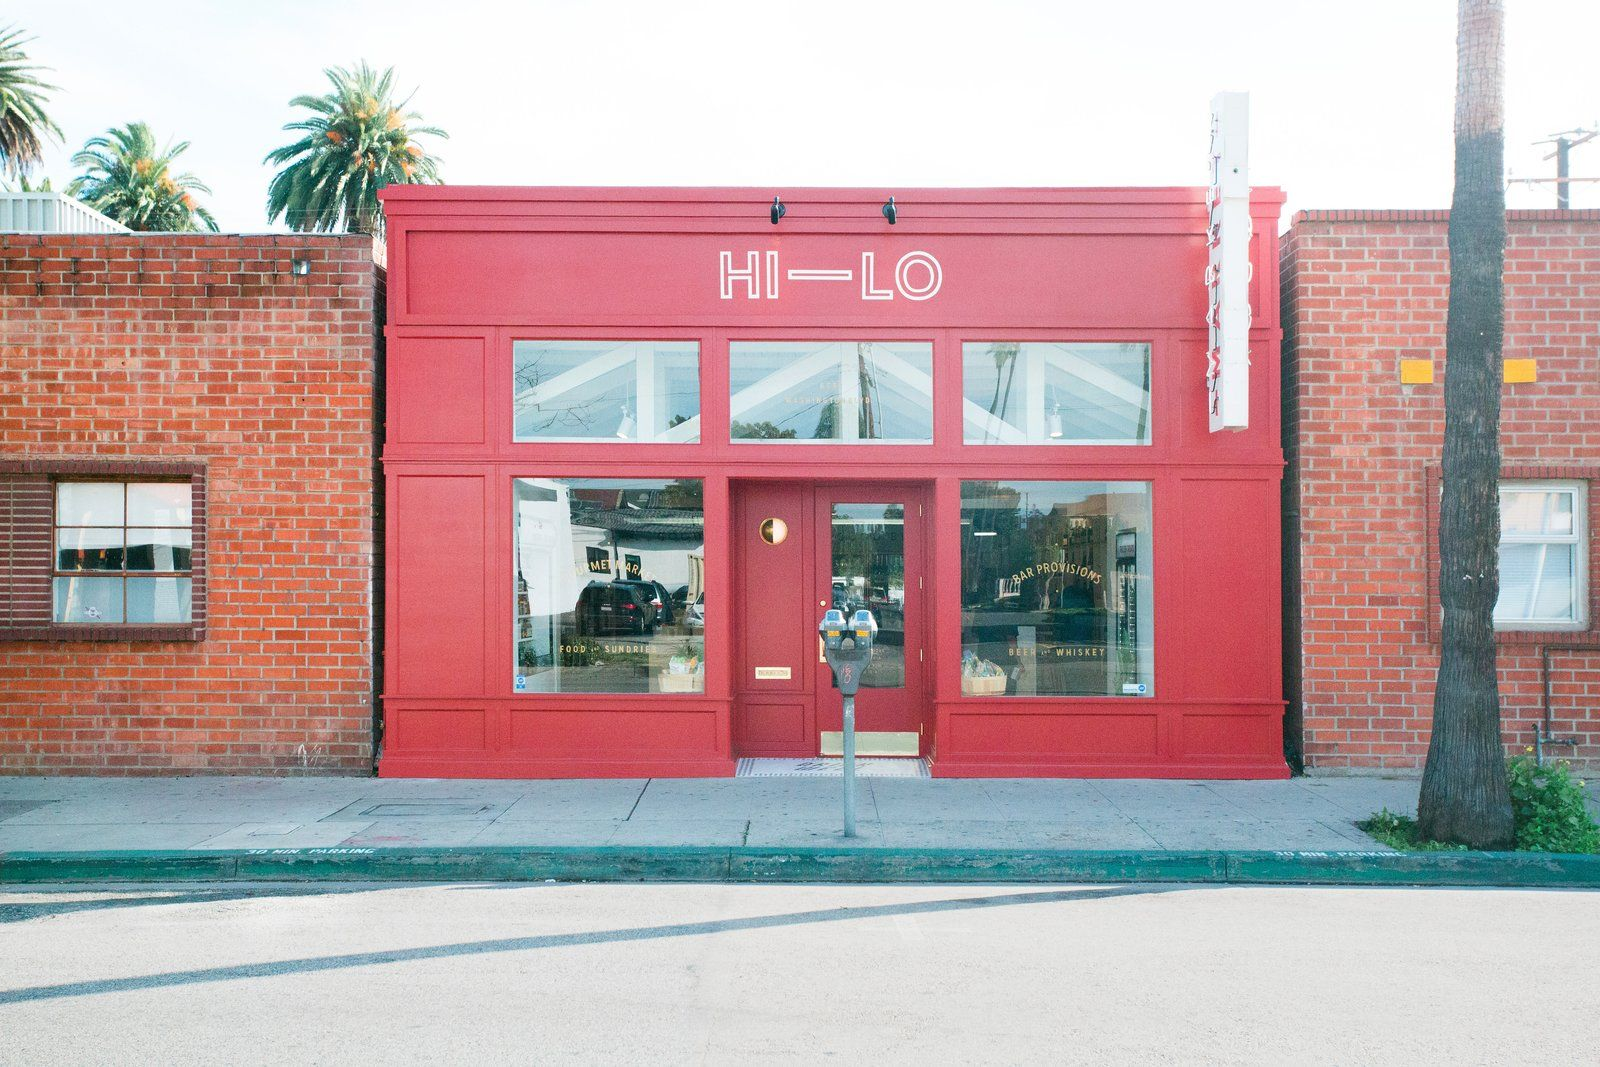 A Modern Liquor Market In Culver City Reminds The Neighborhood To Drink Well Store Architecture Commercial And Office Architecture Retail Facade